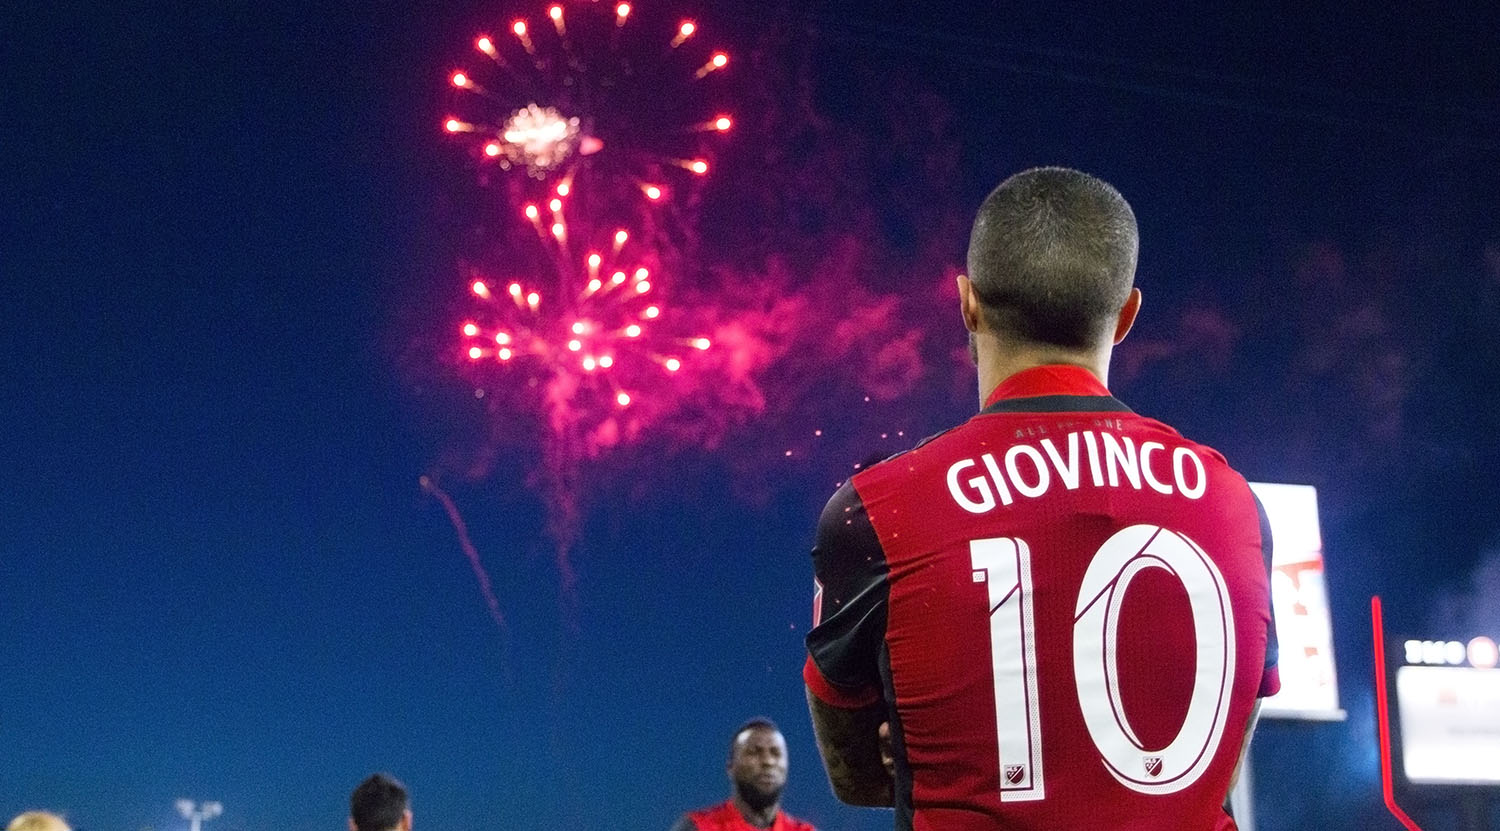 Sebastian Giovinco enjoying the fireworks after winning the Voyageurs Cup in the Canadian Championship against their rival the Montreal Impact.Image by Dennis Marciniak of denMAR Media.